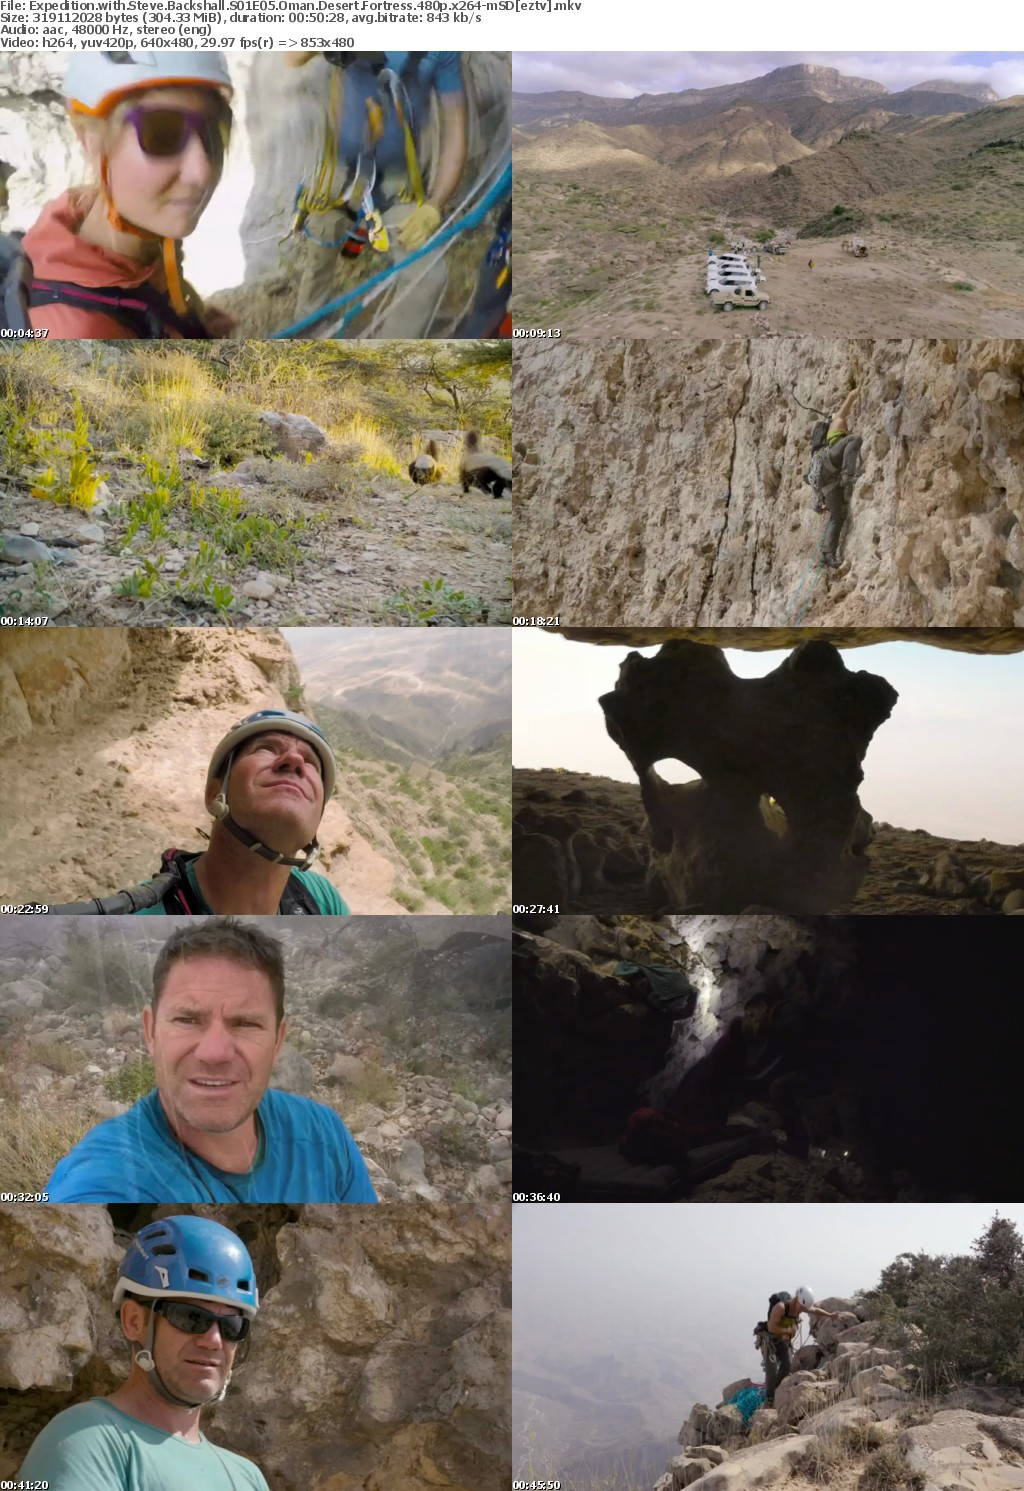 Expedition with Steve Backshall S01E05 Oman Desert Fortress 480p x264-mSD